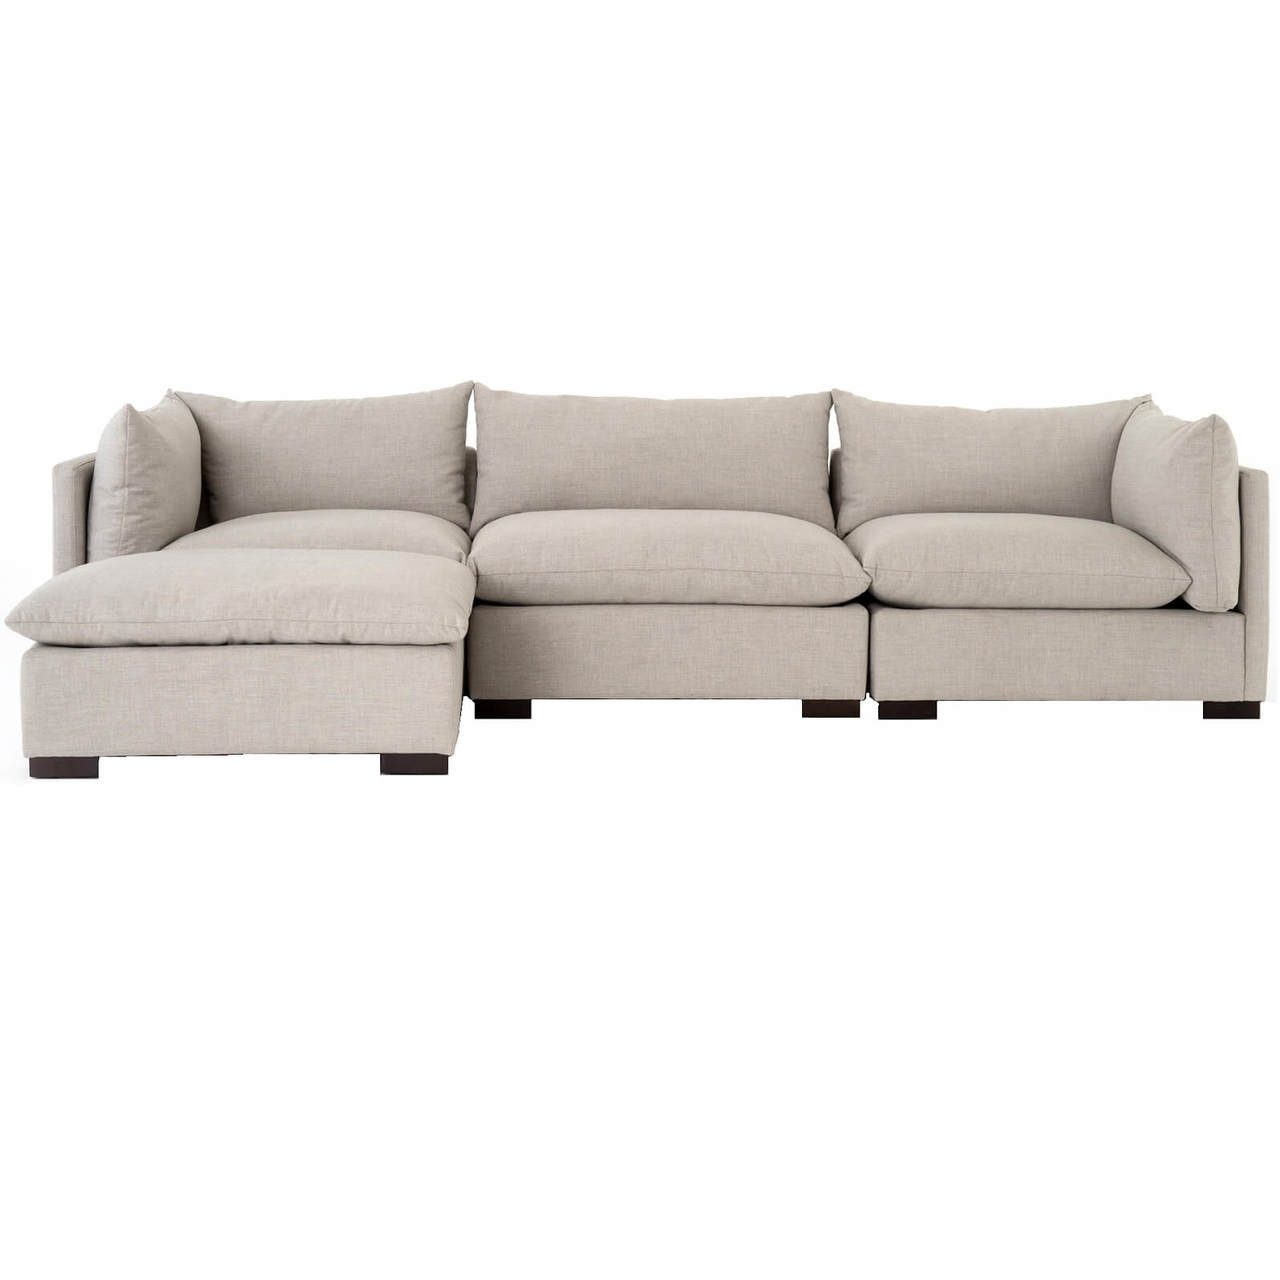 Pleasant Westworld Modern Beige 4 Piece Modular Lounge Sectional Sofa Short Links Chair Design For Home Short Linksinfo